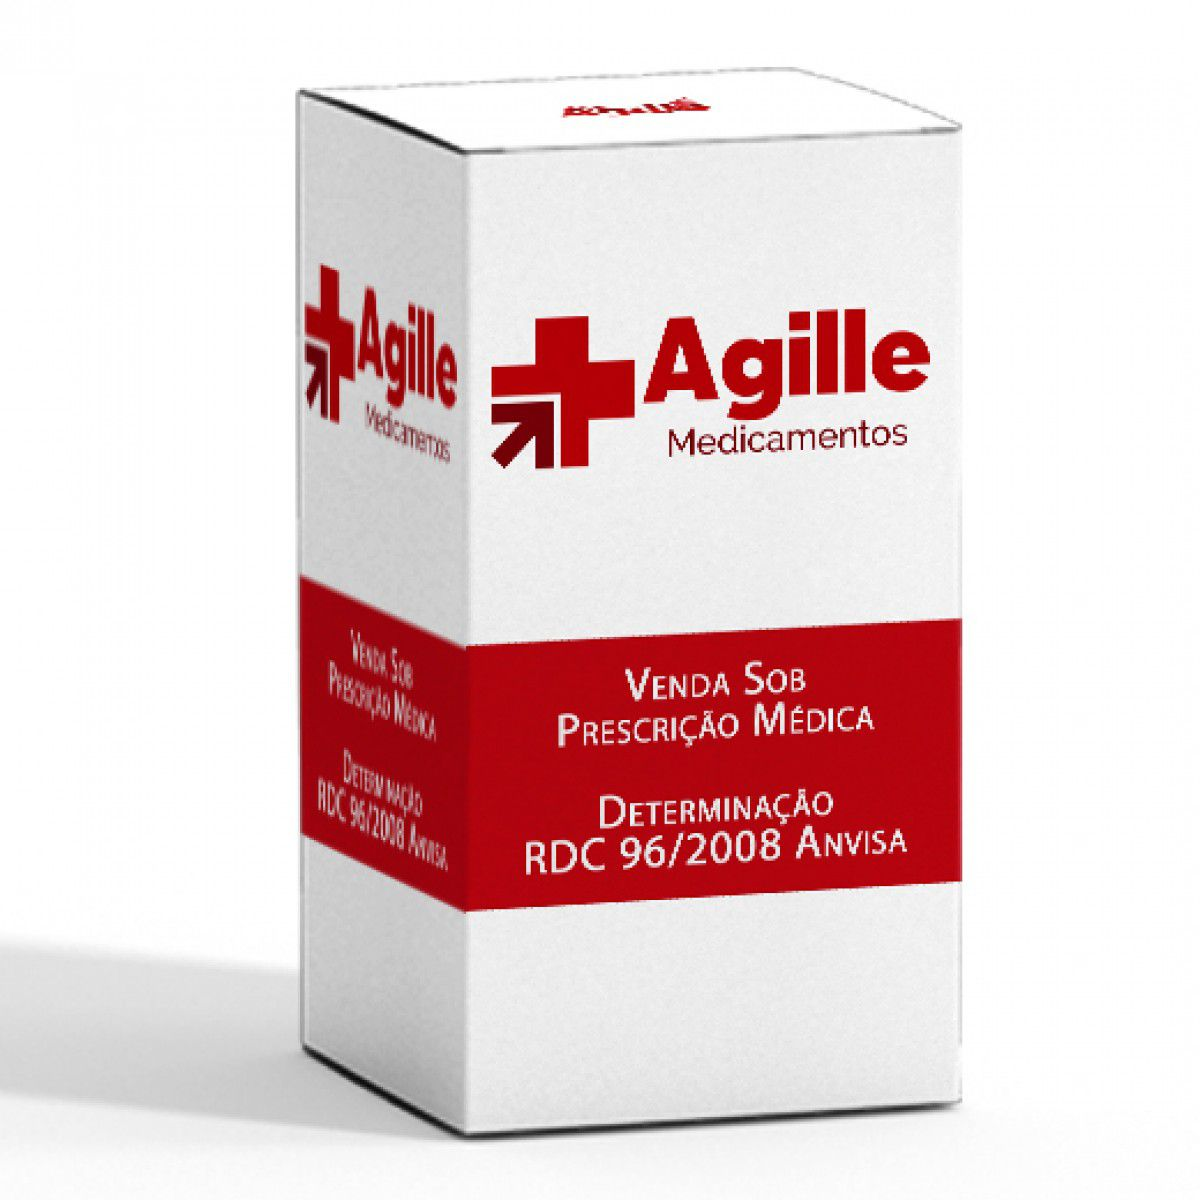 EXJADE 500MG CX 28 COMP.  - Agille Speciality